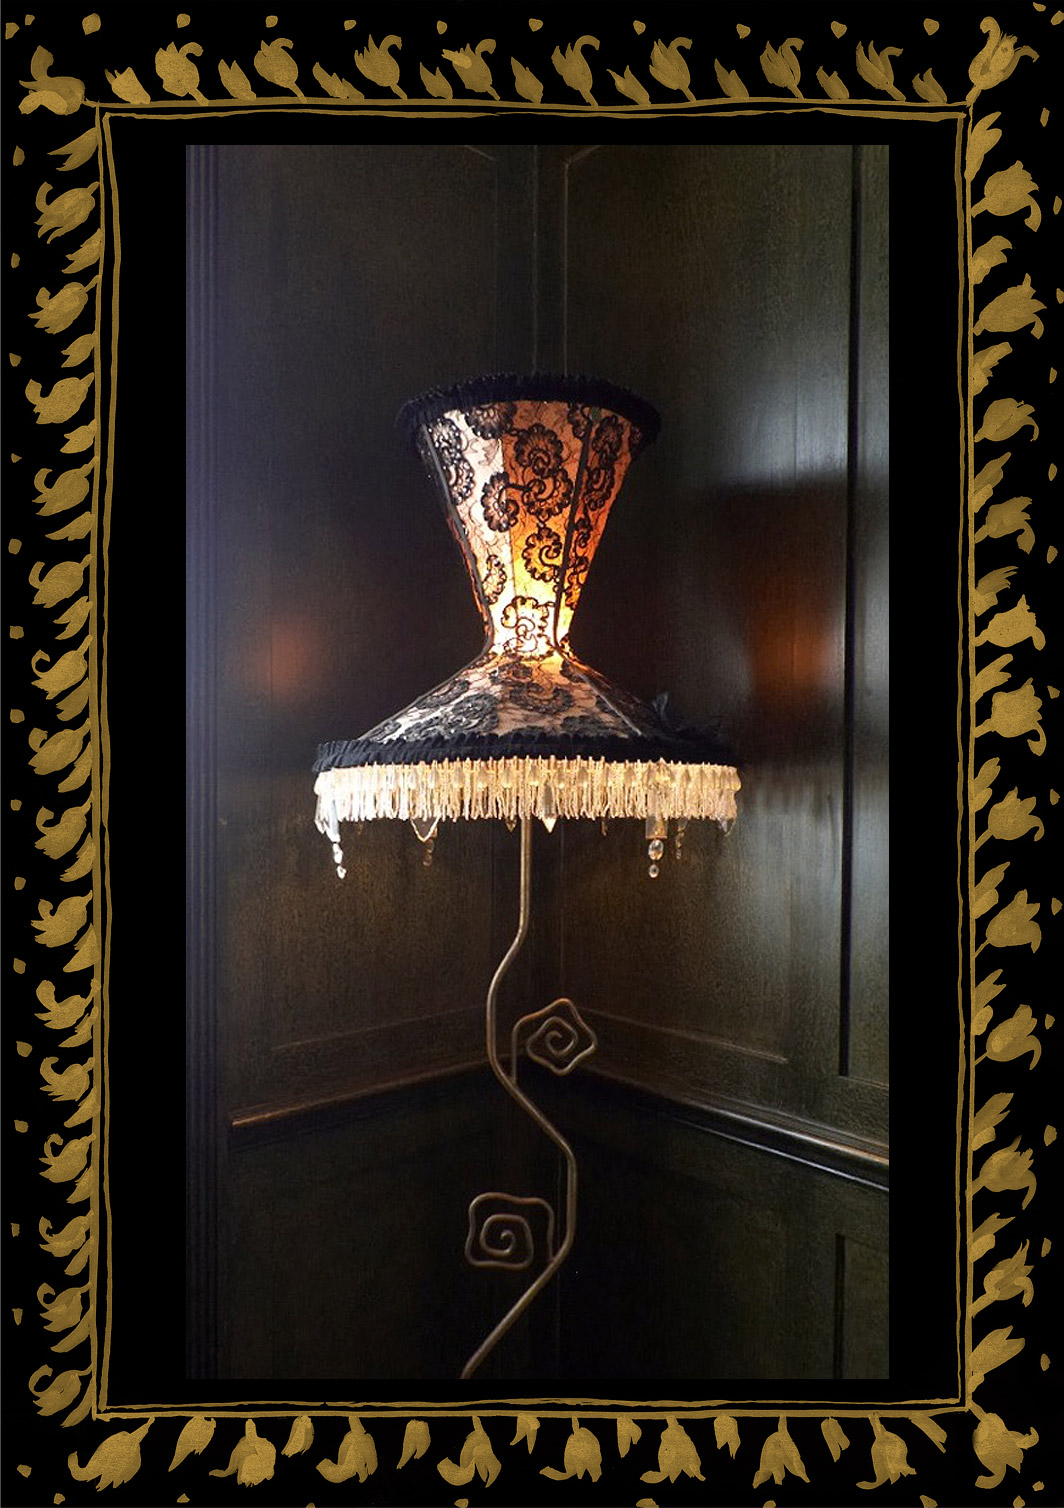 Bustier lampshade in black lace, trimmed with crystal chandelier drops